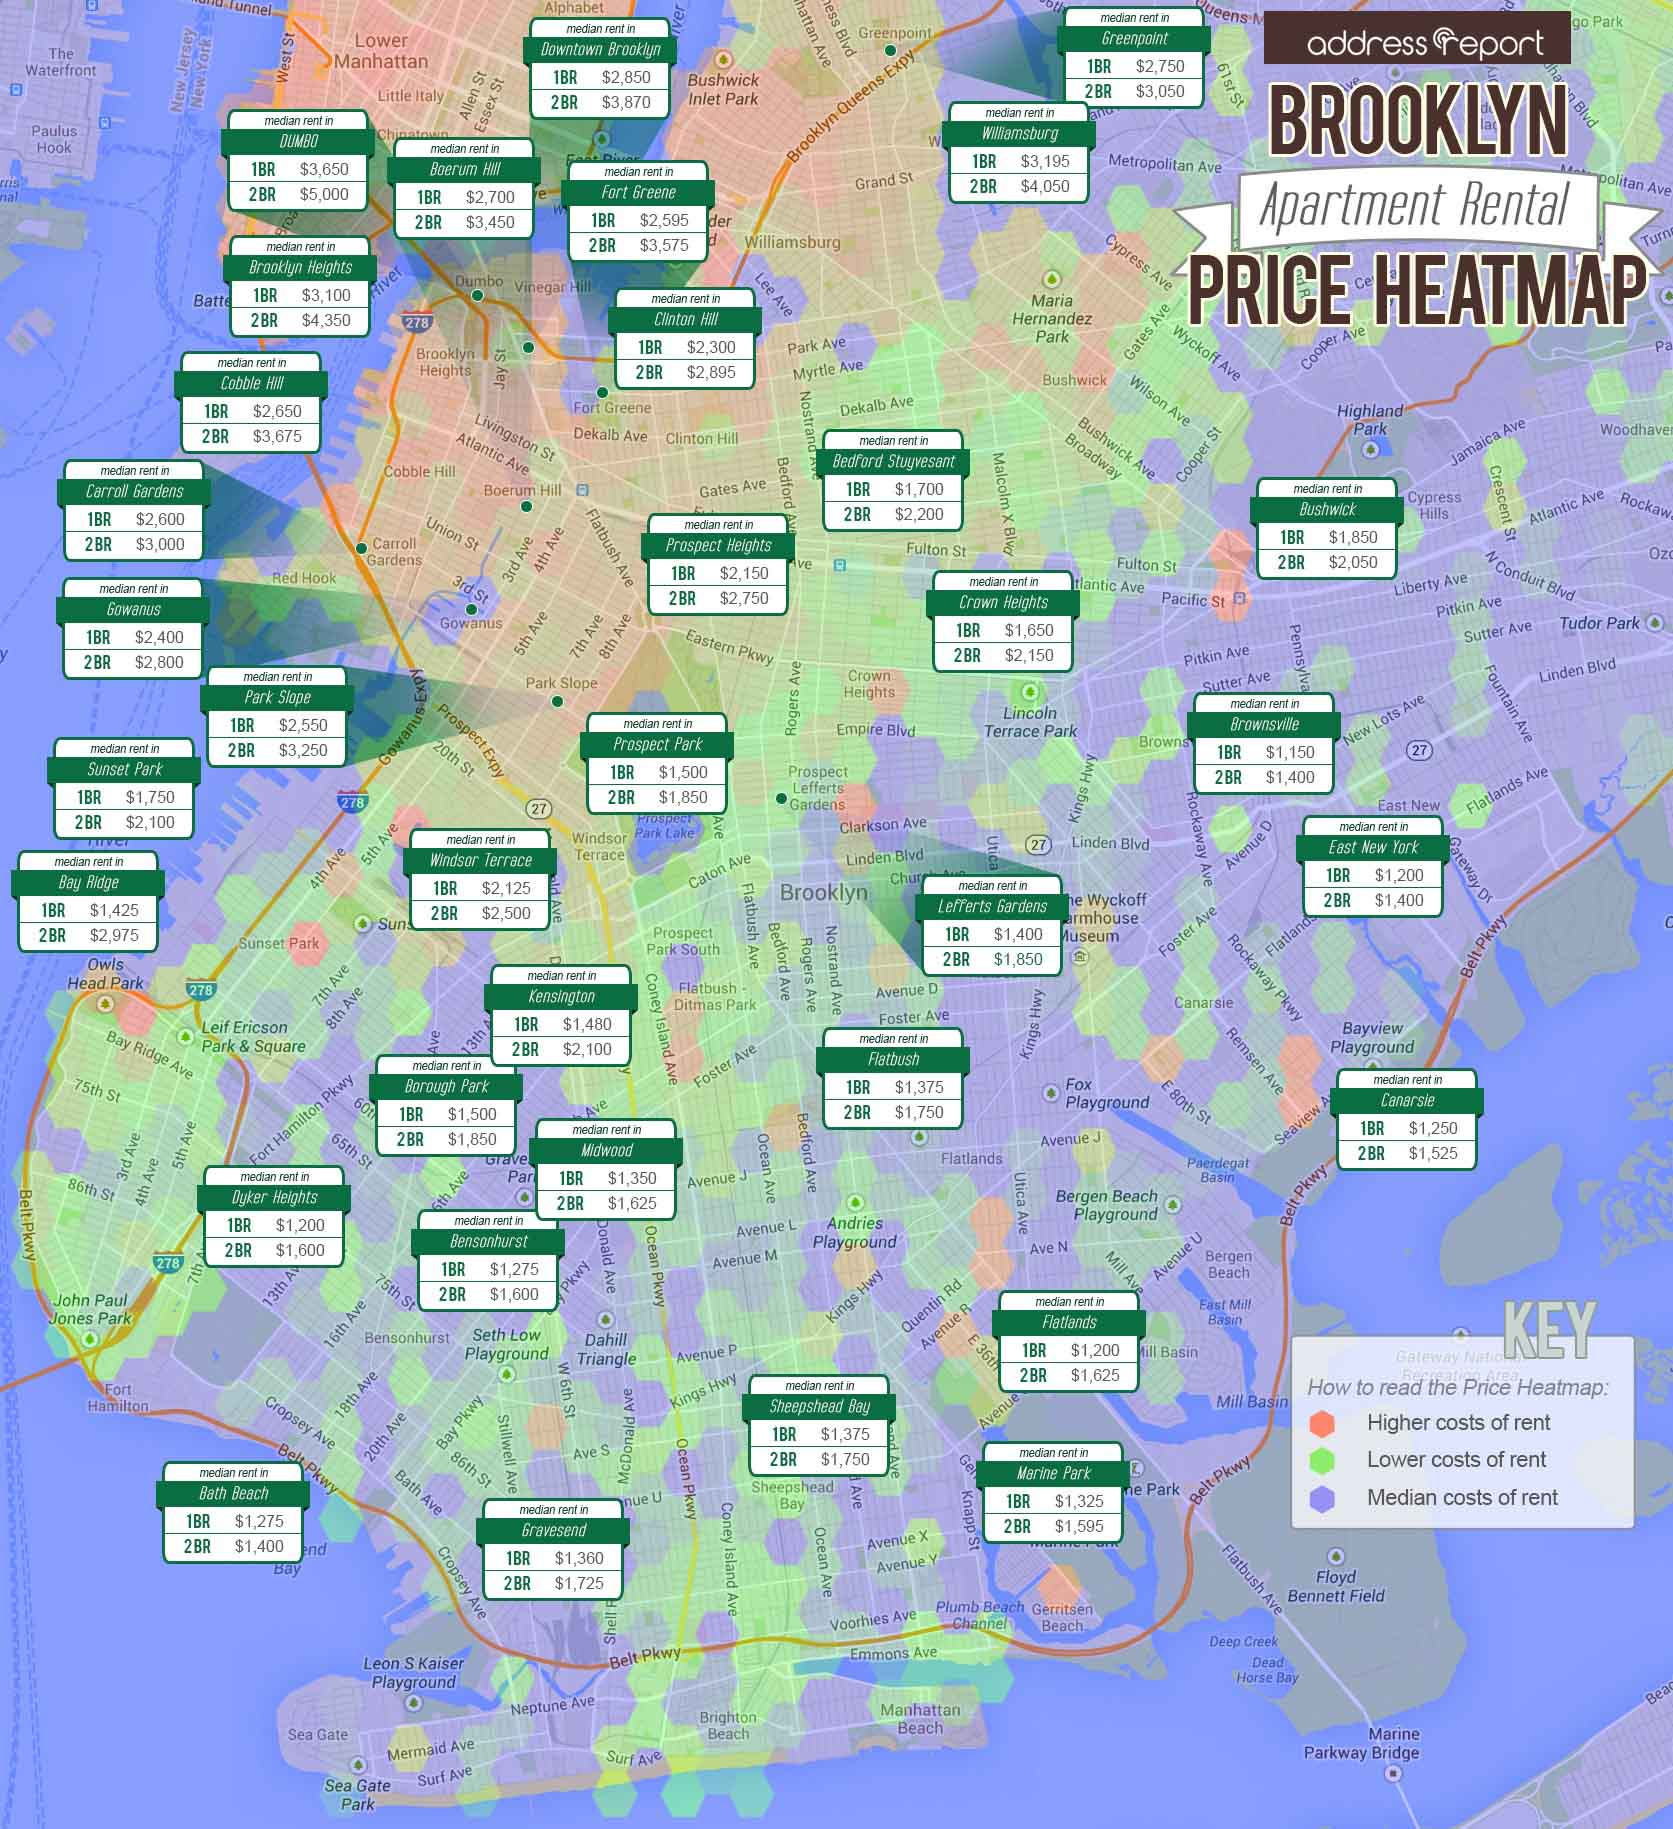 Brooklyn Apartment Rental Prices Map - AddressReport Blog